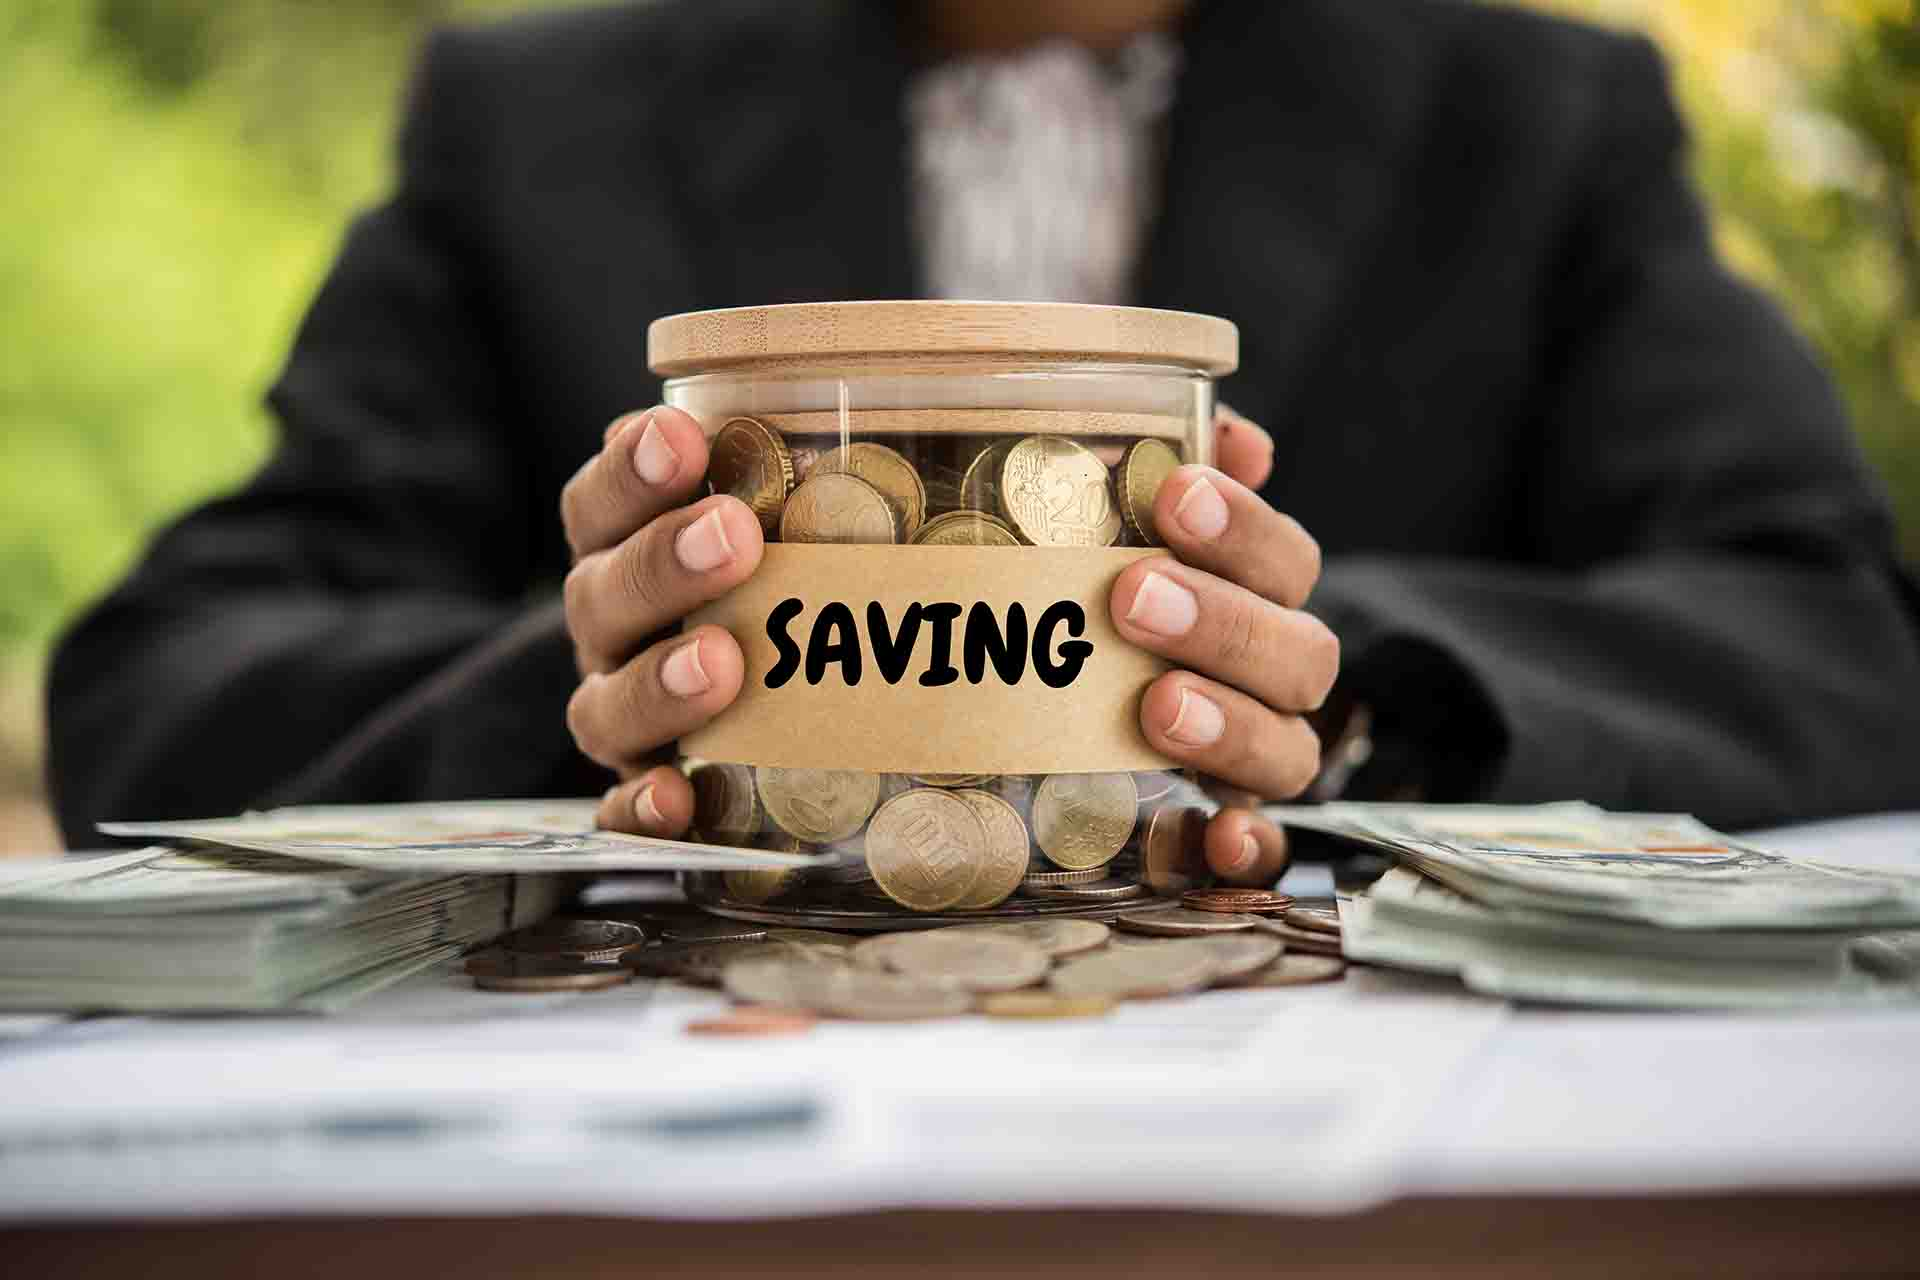 5 tips to make the most of your RRSP